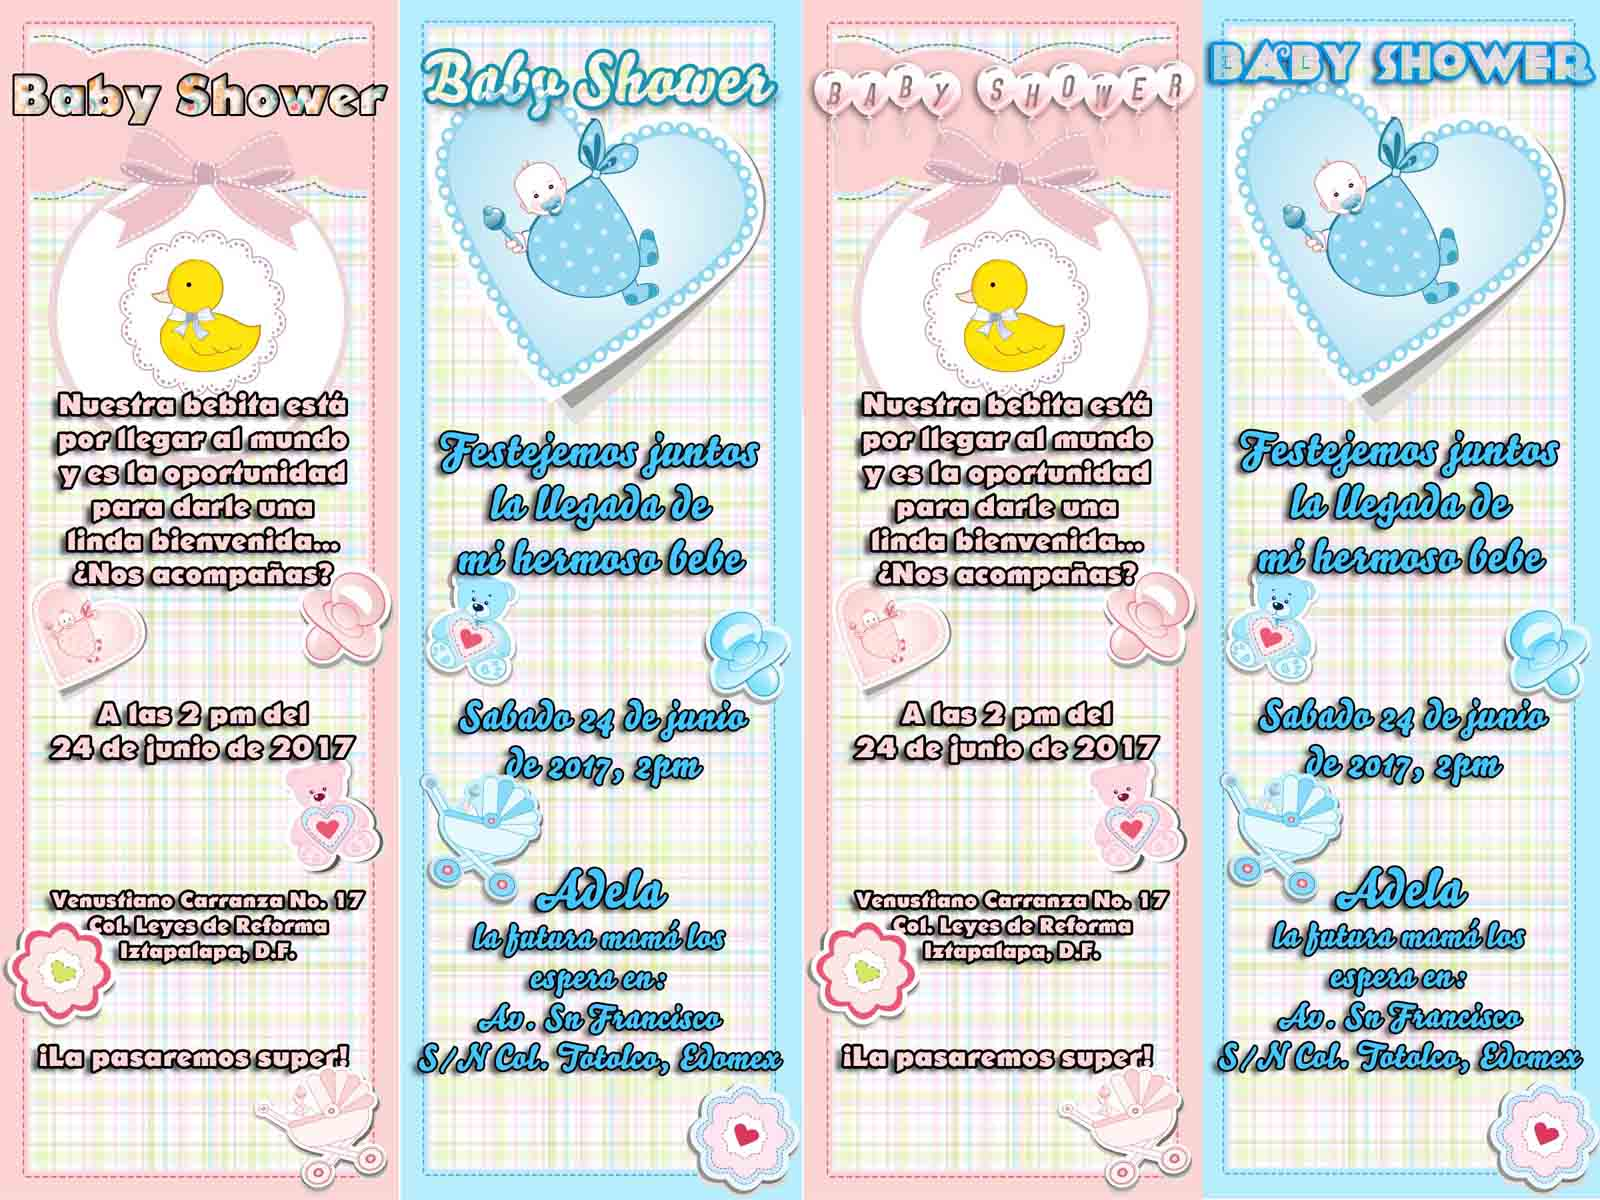 Los Mejores Recuerditos de Baby Shower - Plan the Perfect